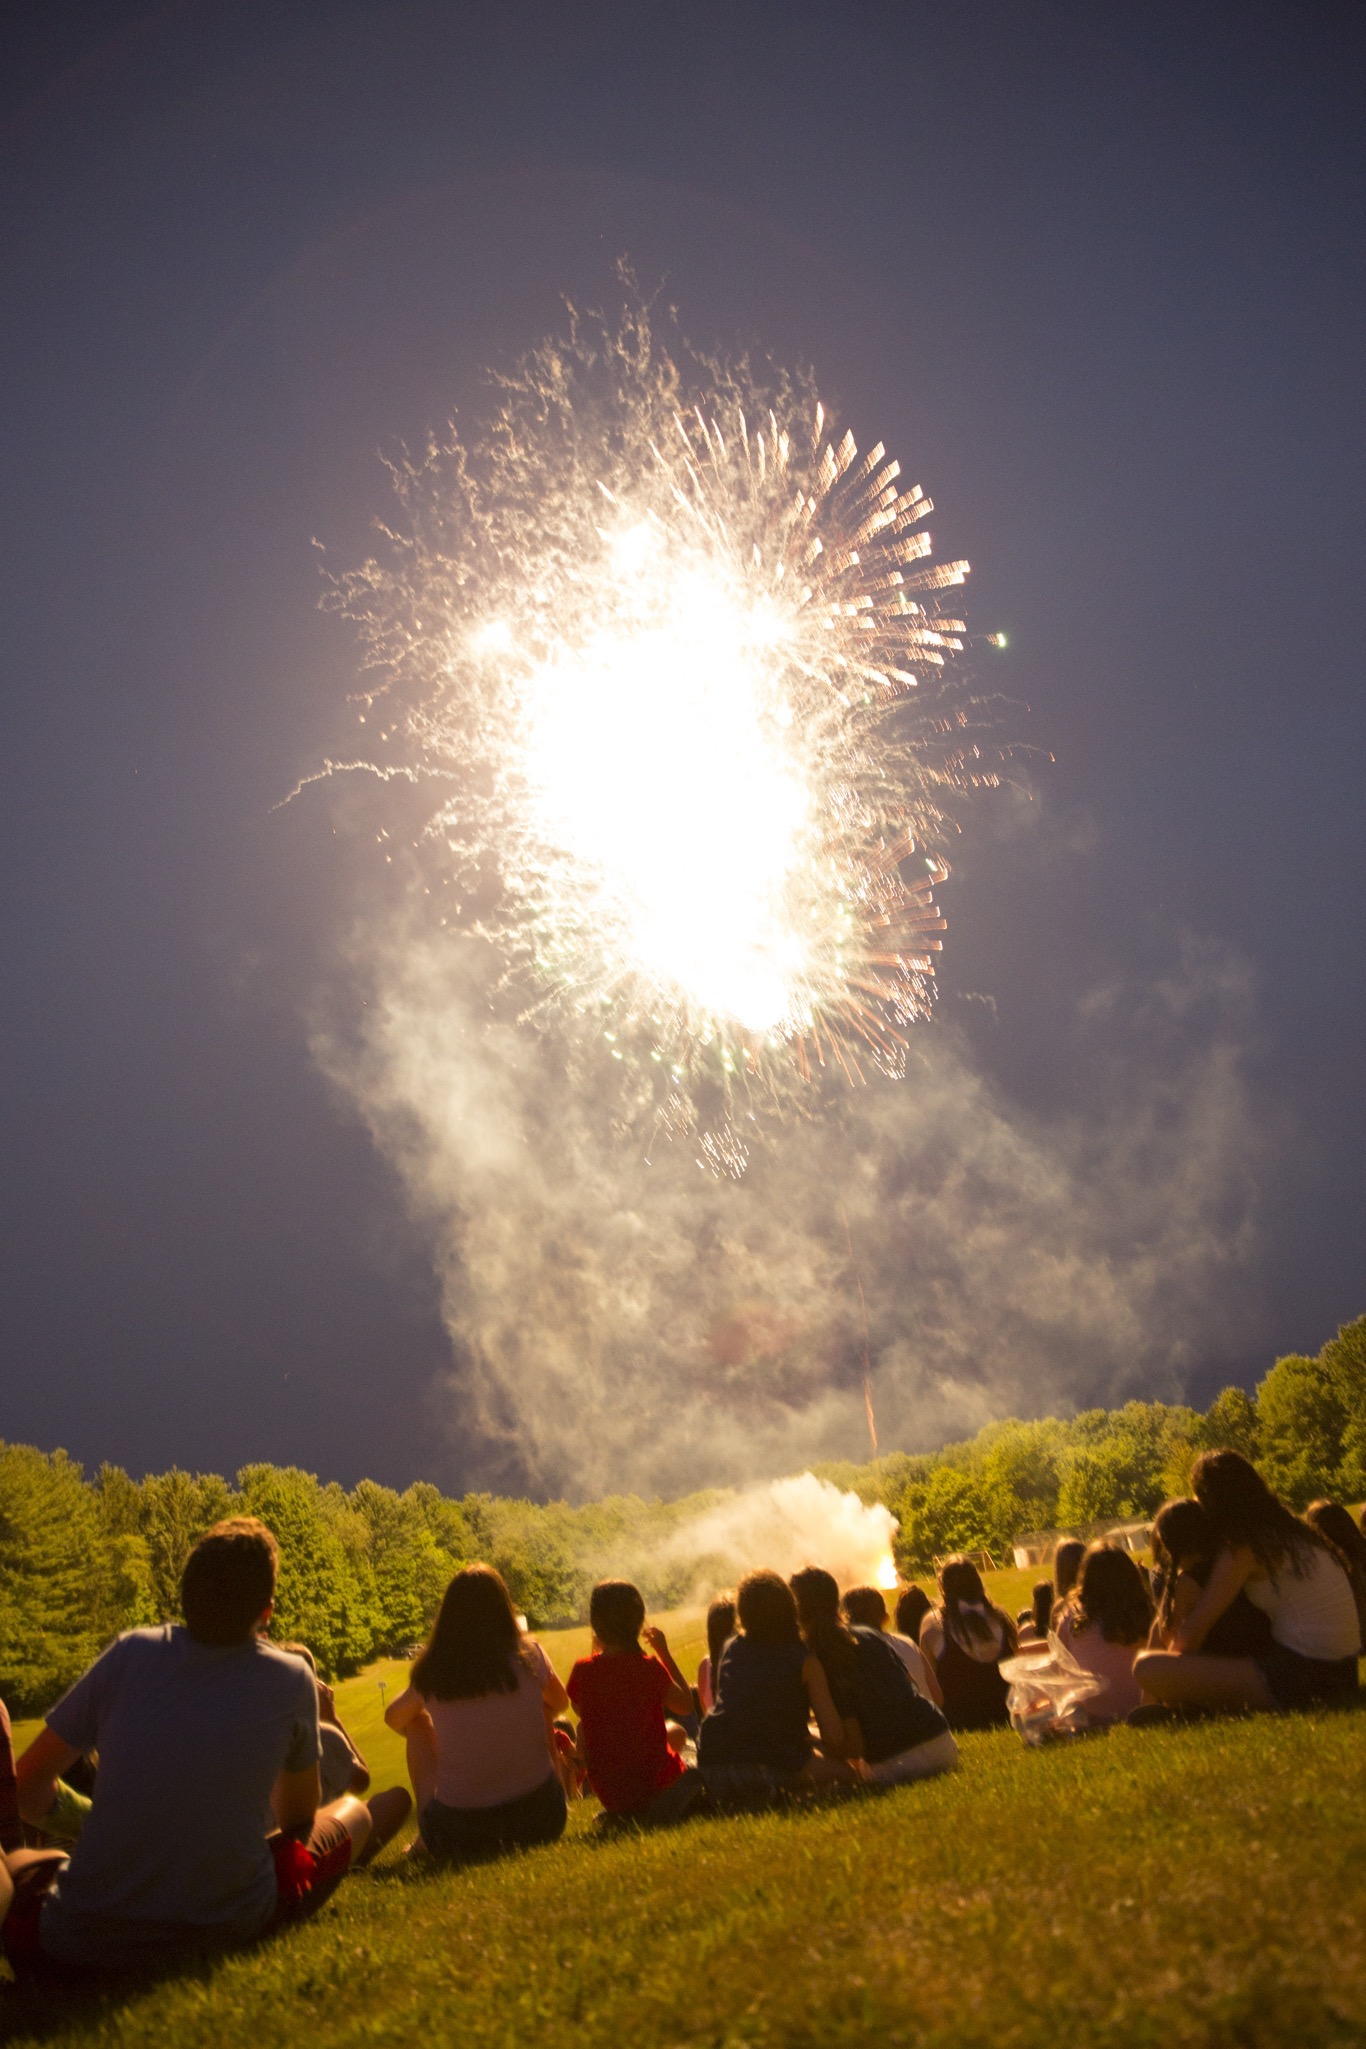 Fireworks on the 4th of July.